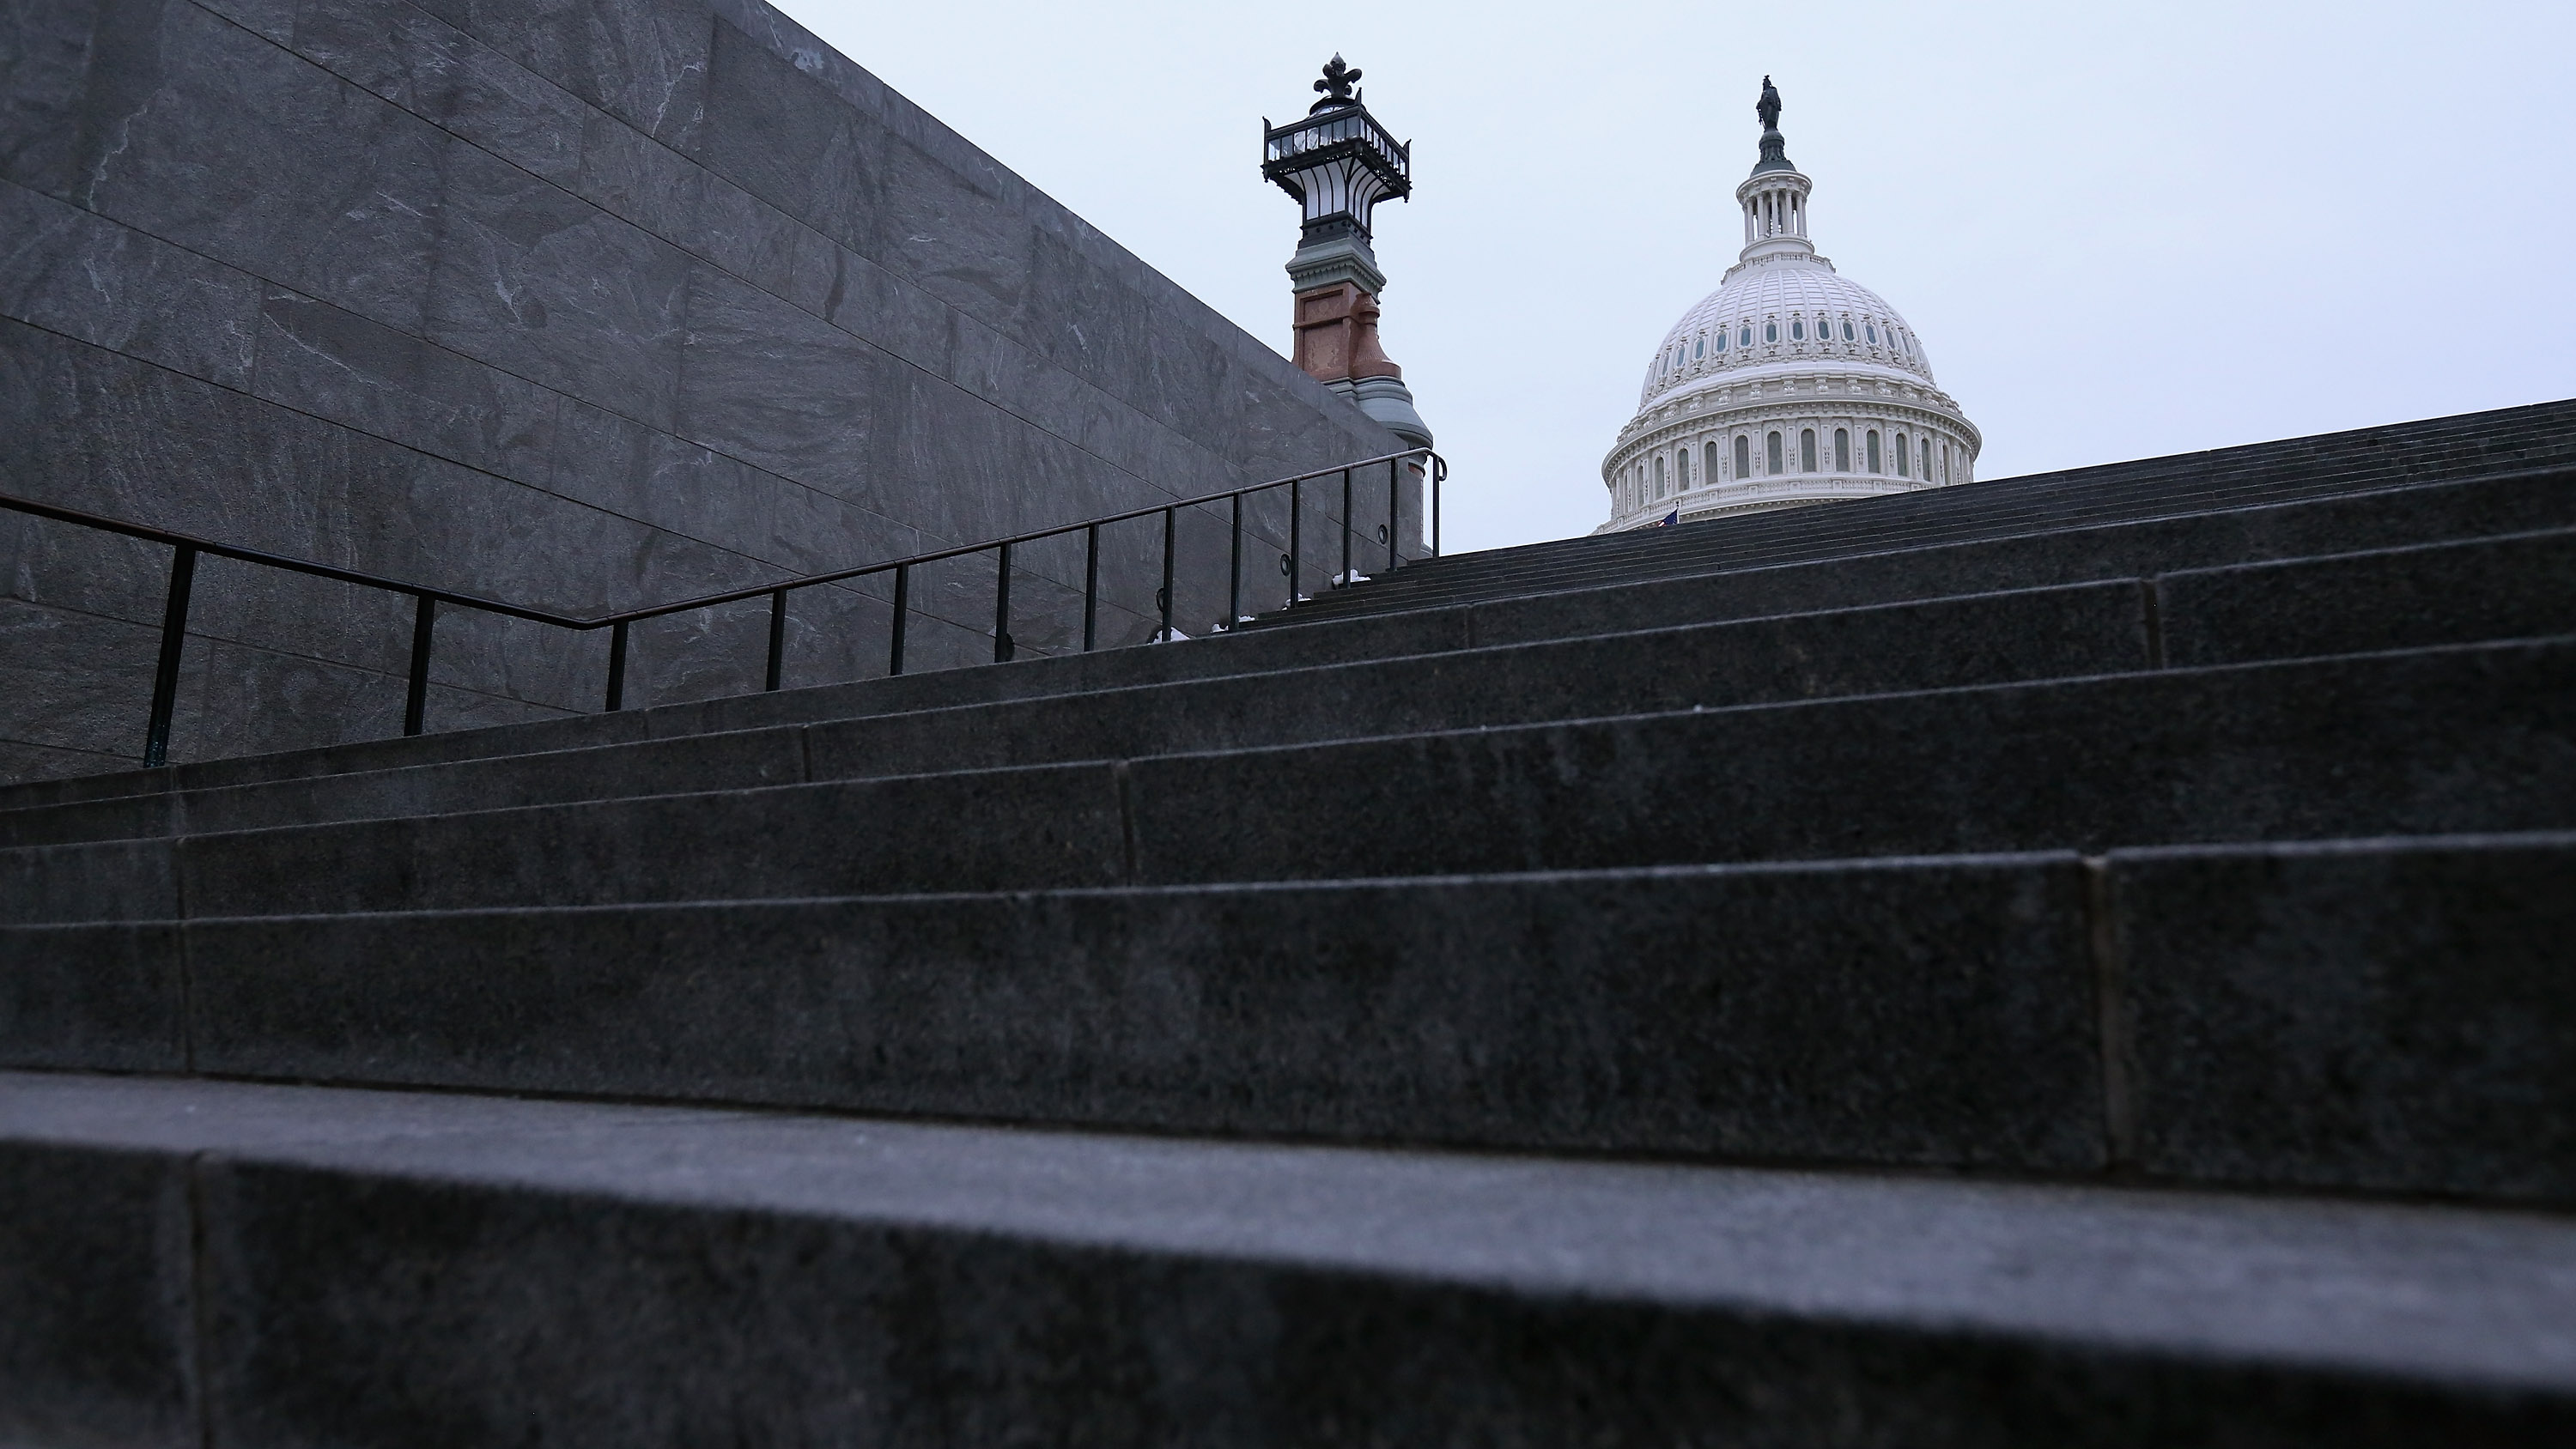 After holiday break, shutdown threat looms for Congress